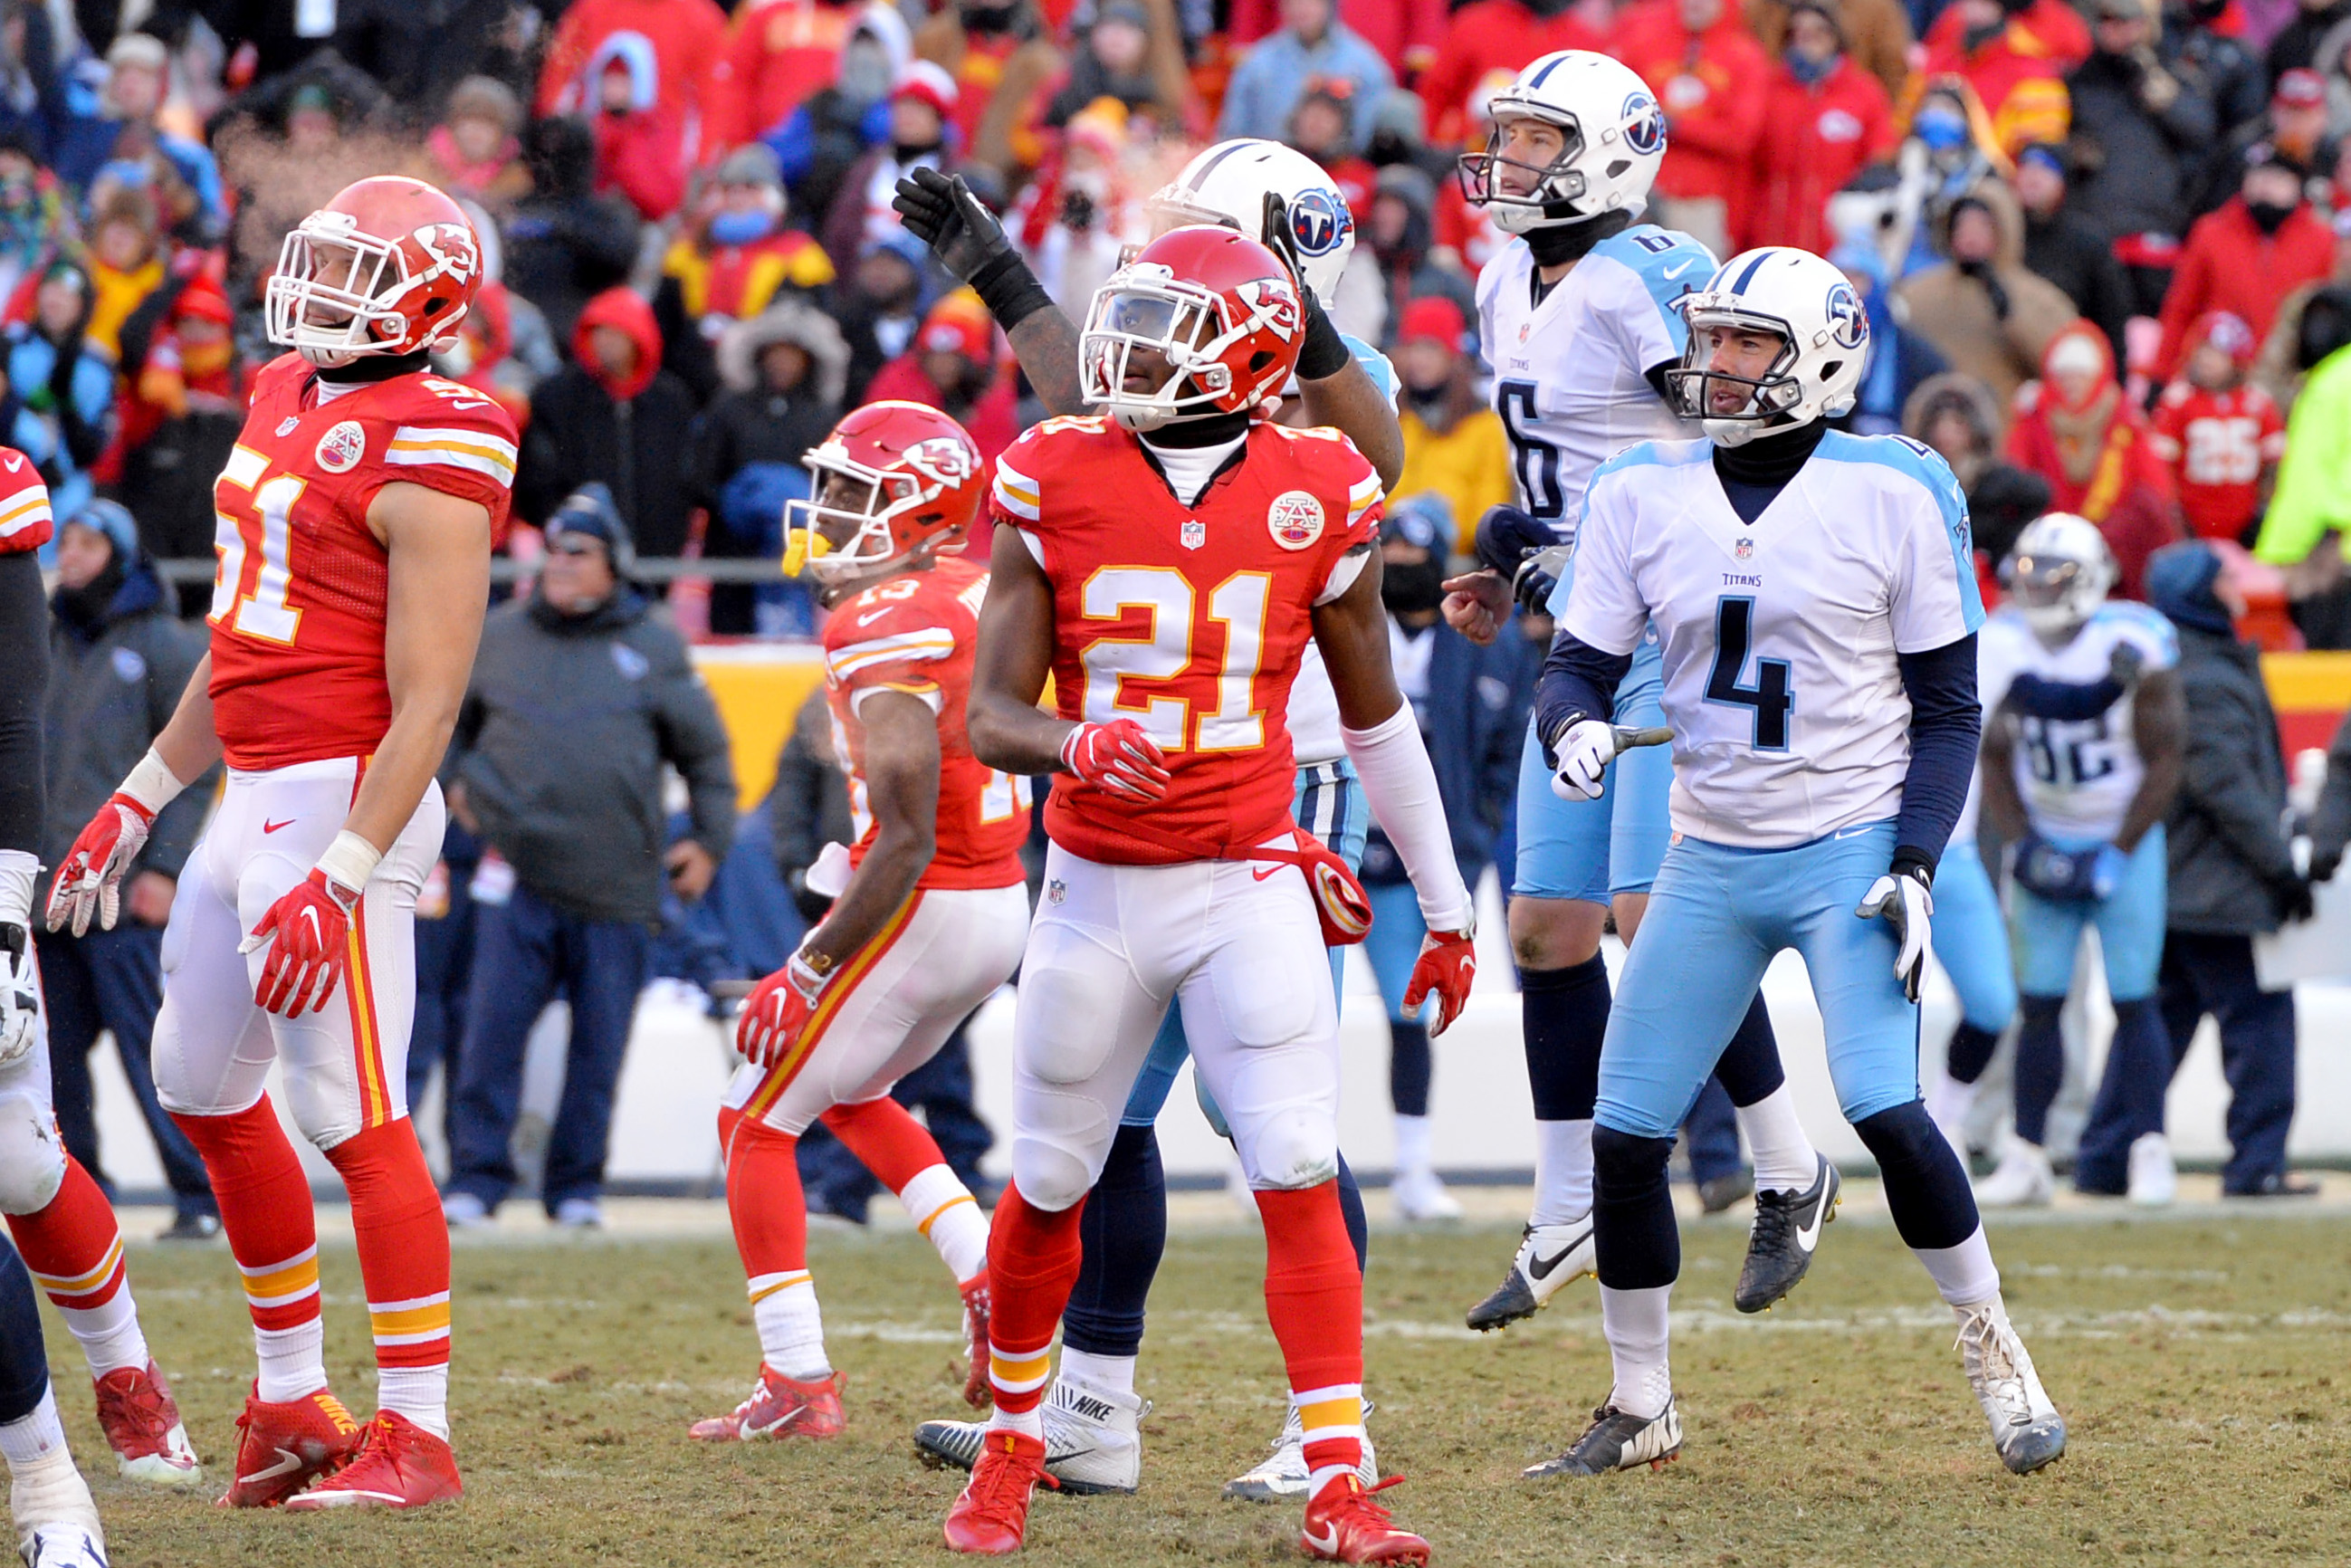 9754642-nfl-tennessee-titans-at-kansas-city-chiefs